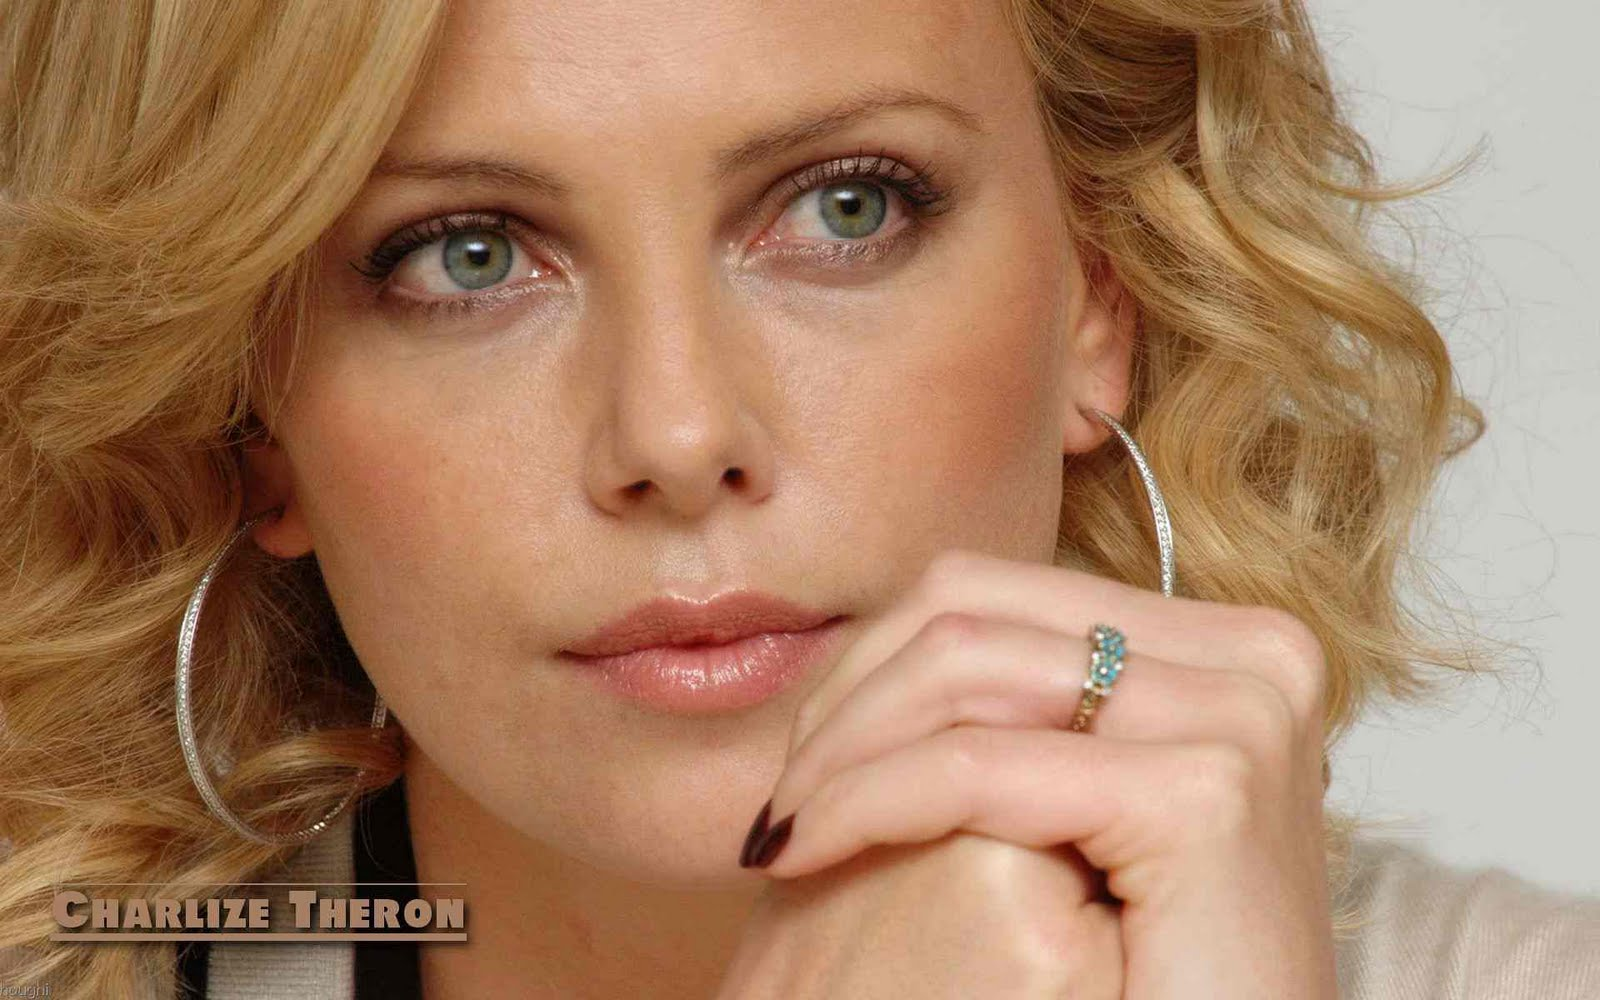 charlize theron profile name charlize theron date of birth 07 august